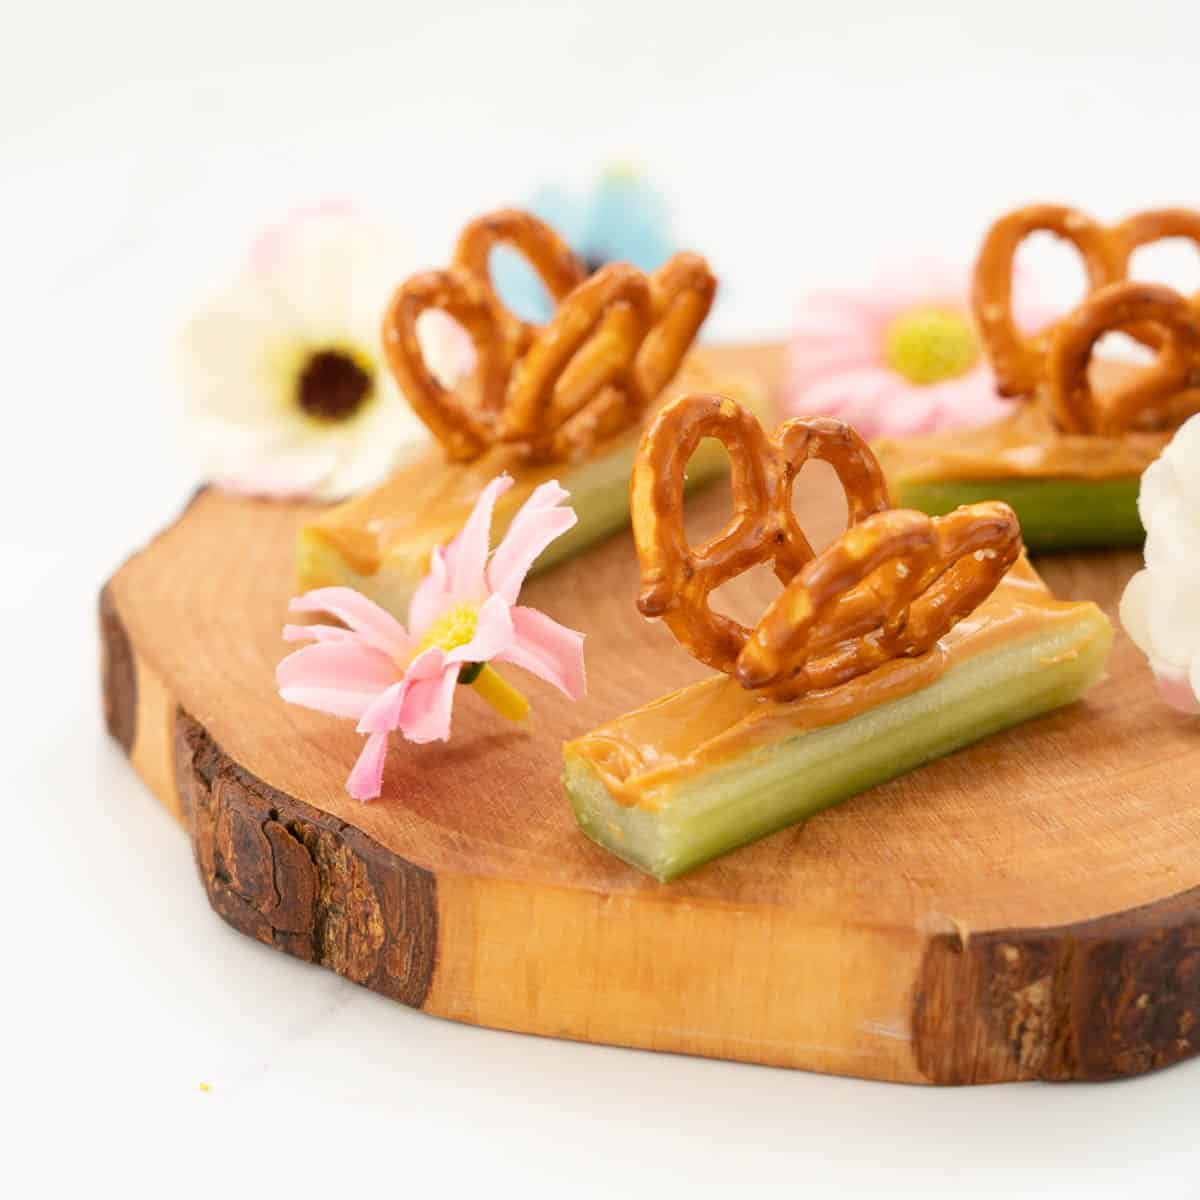 Celery sticks filled with peanut butter decorated with pretzels to form wings, making a butterfly snack.